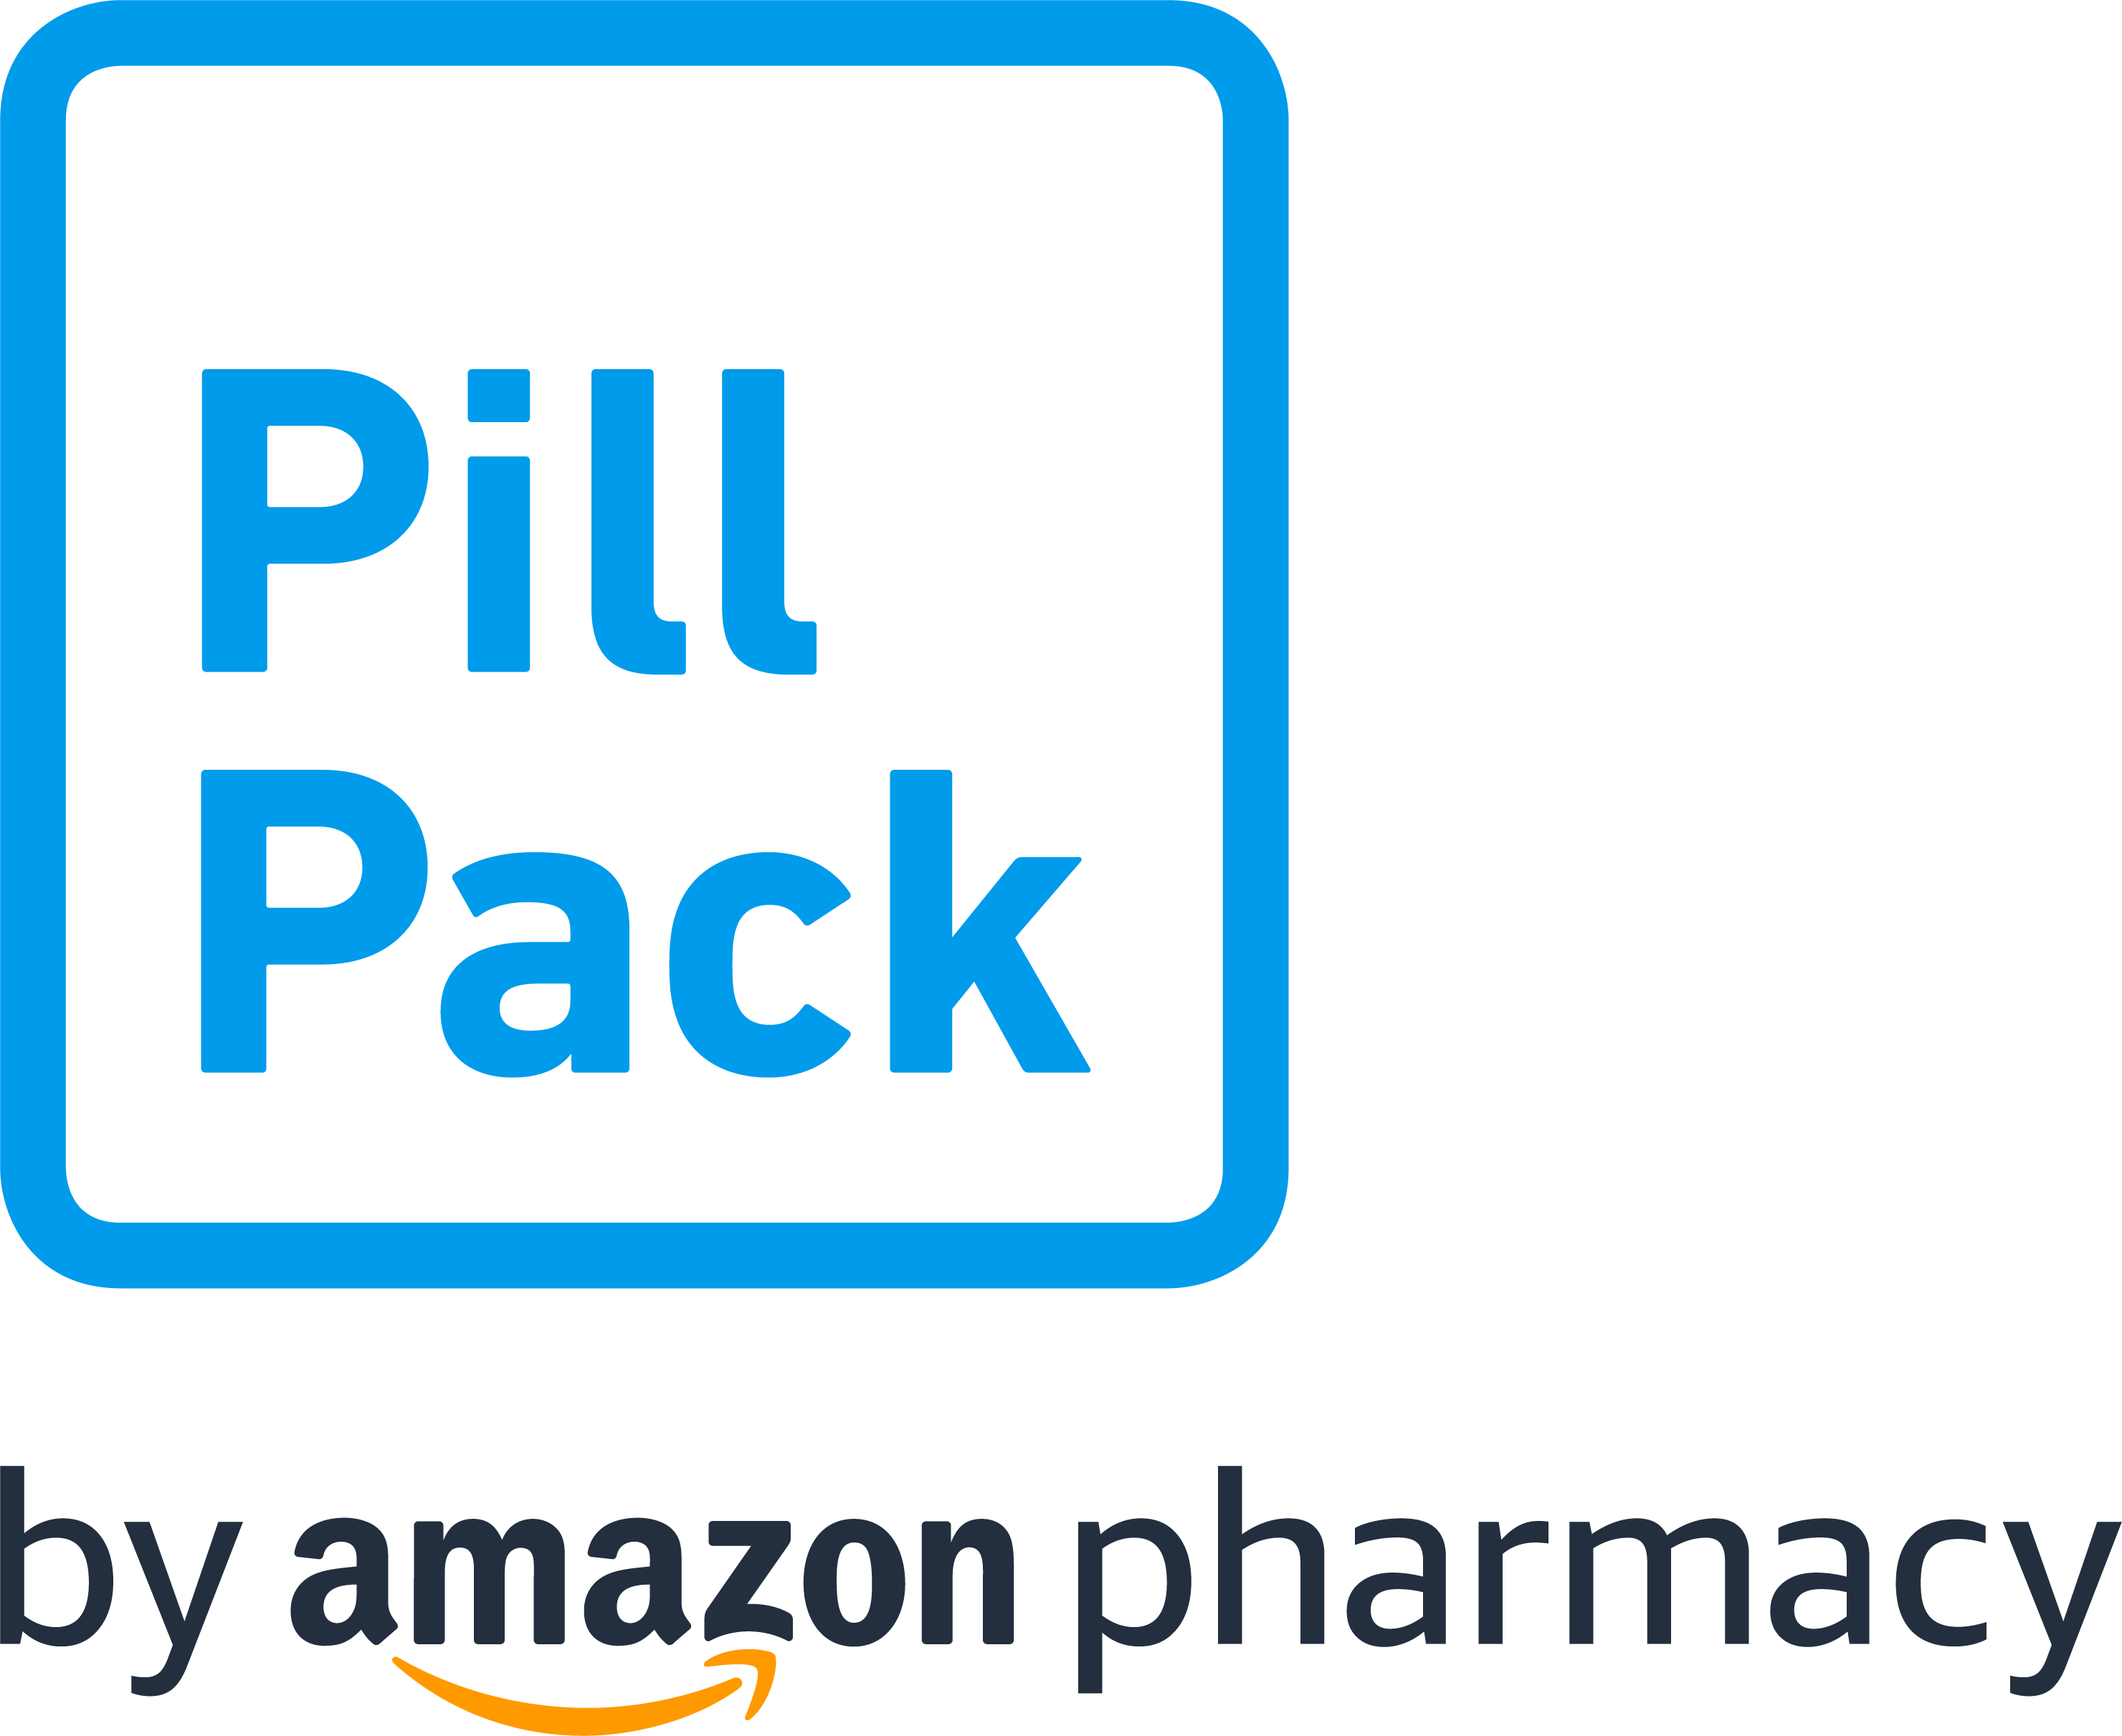 PillPack Help Center home page